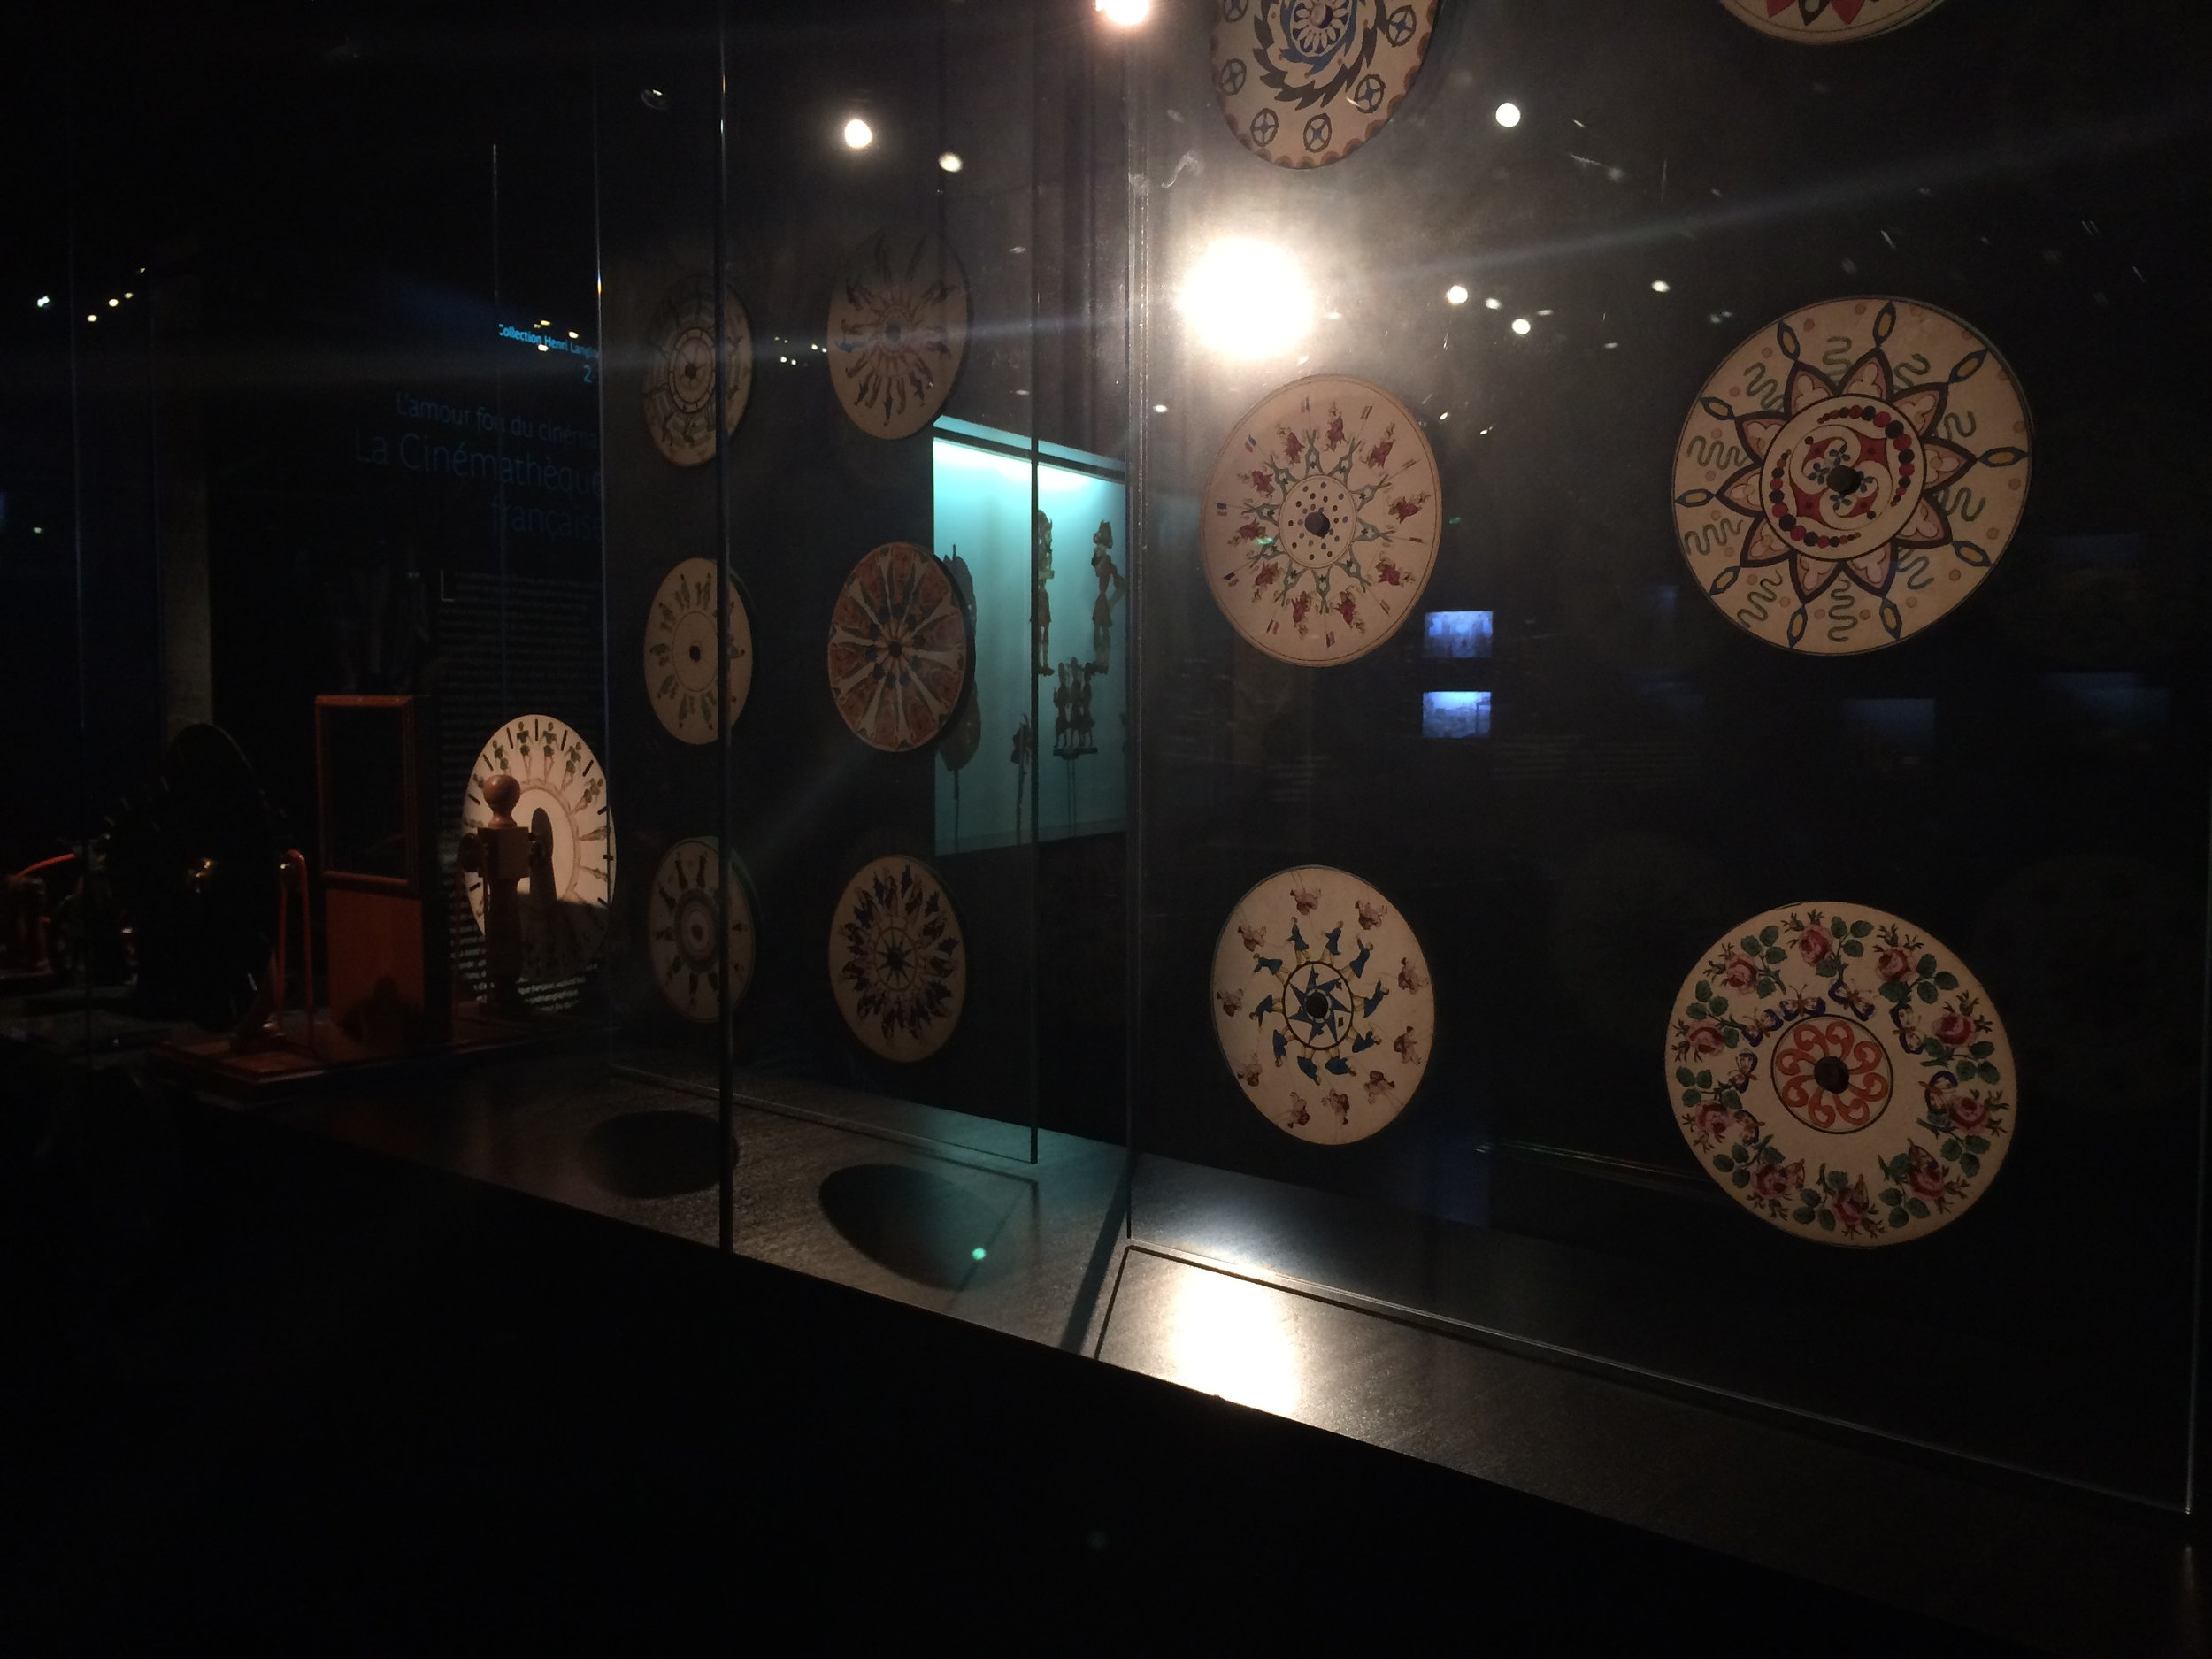 Spinning wheels seen through slits in the reflection of a mirror, called a   phenakistoscope, were available for the public to try.